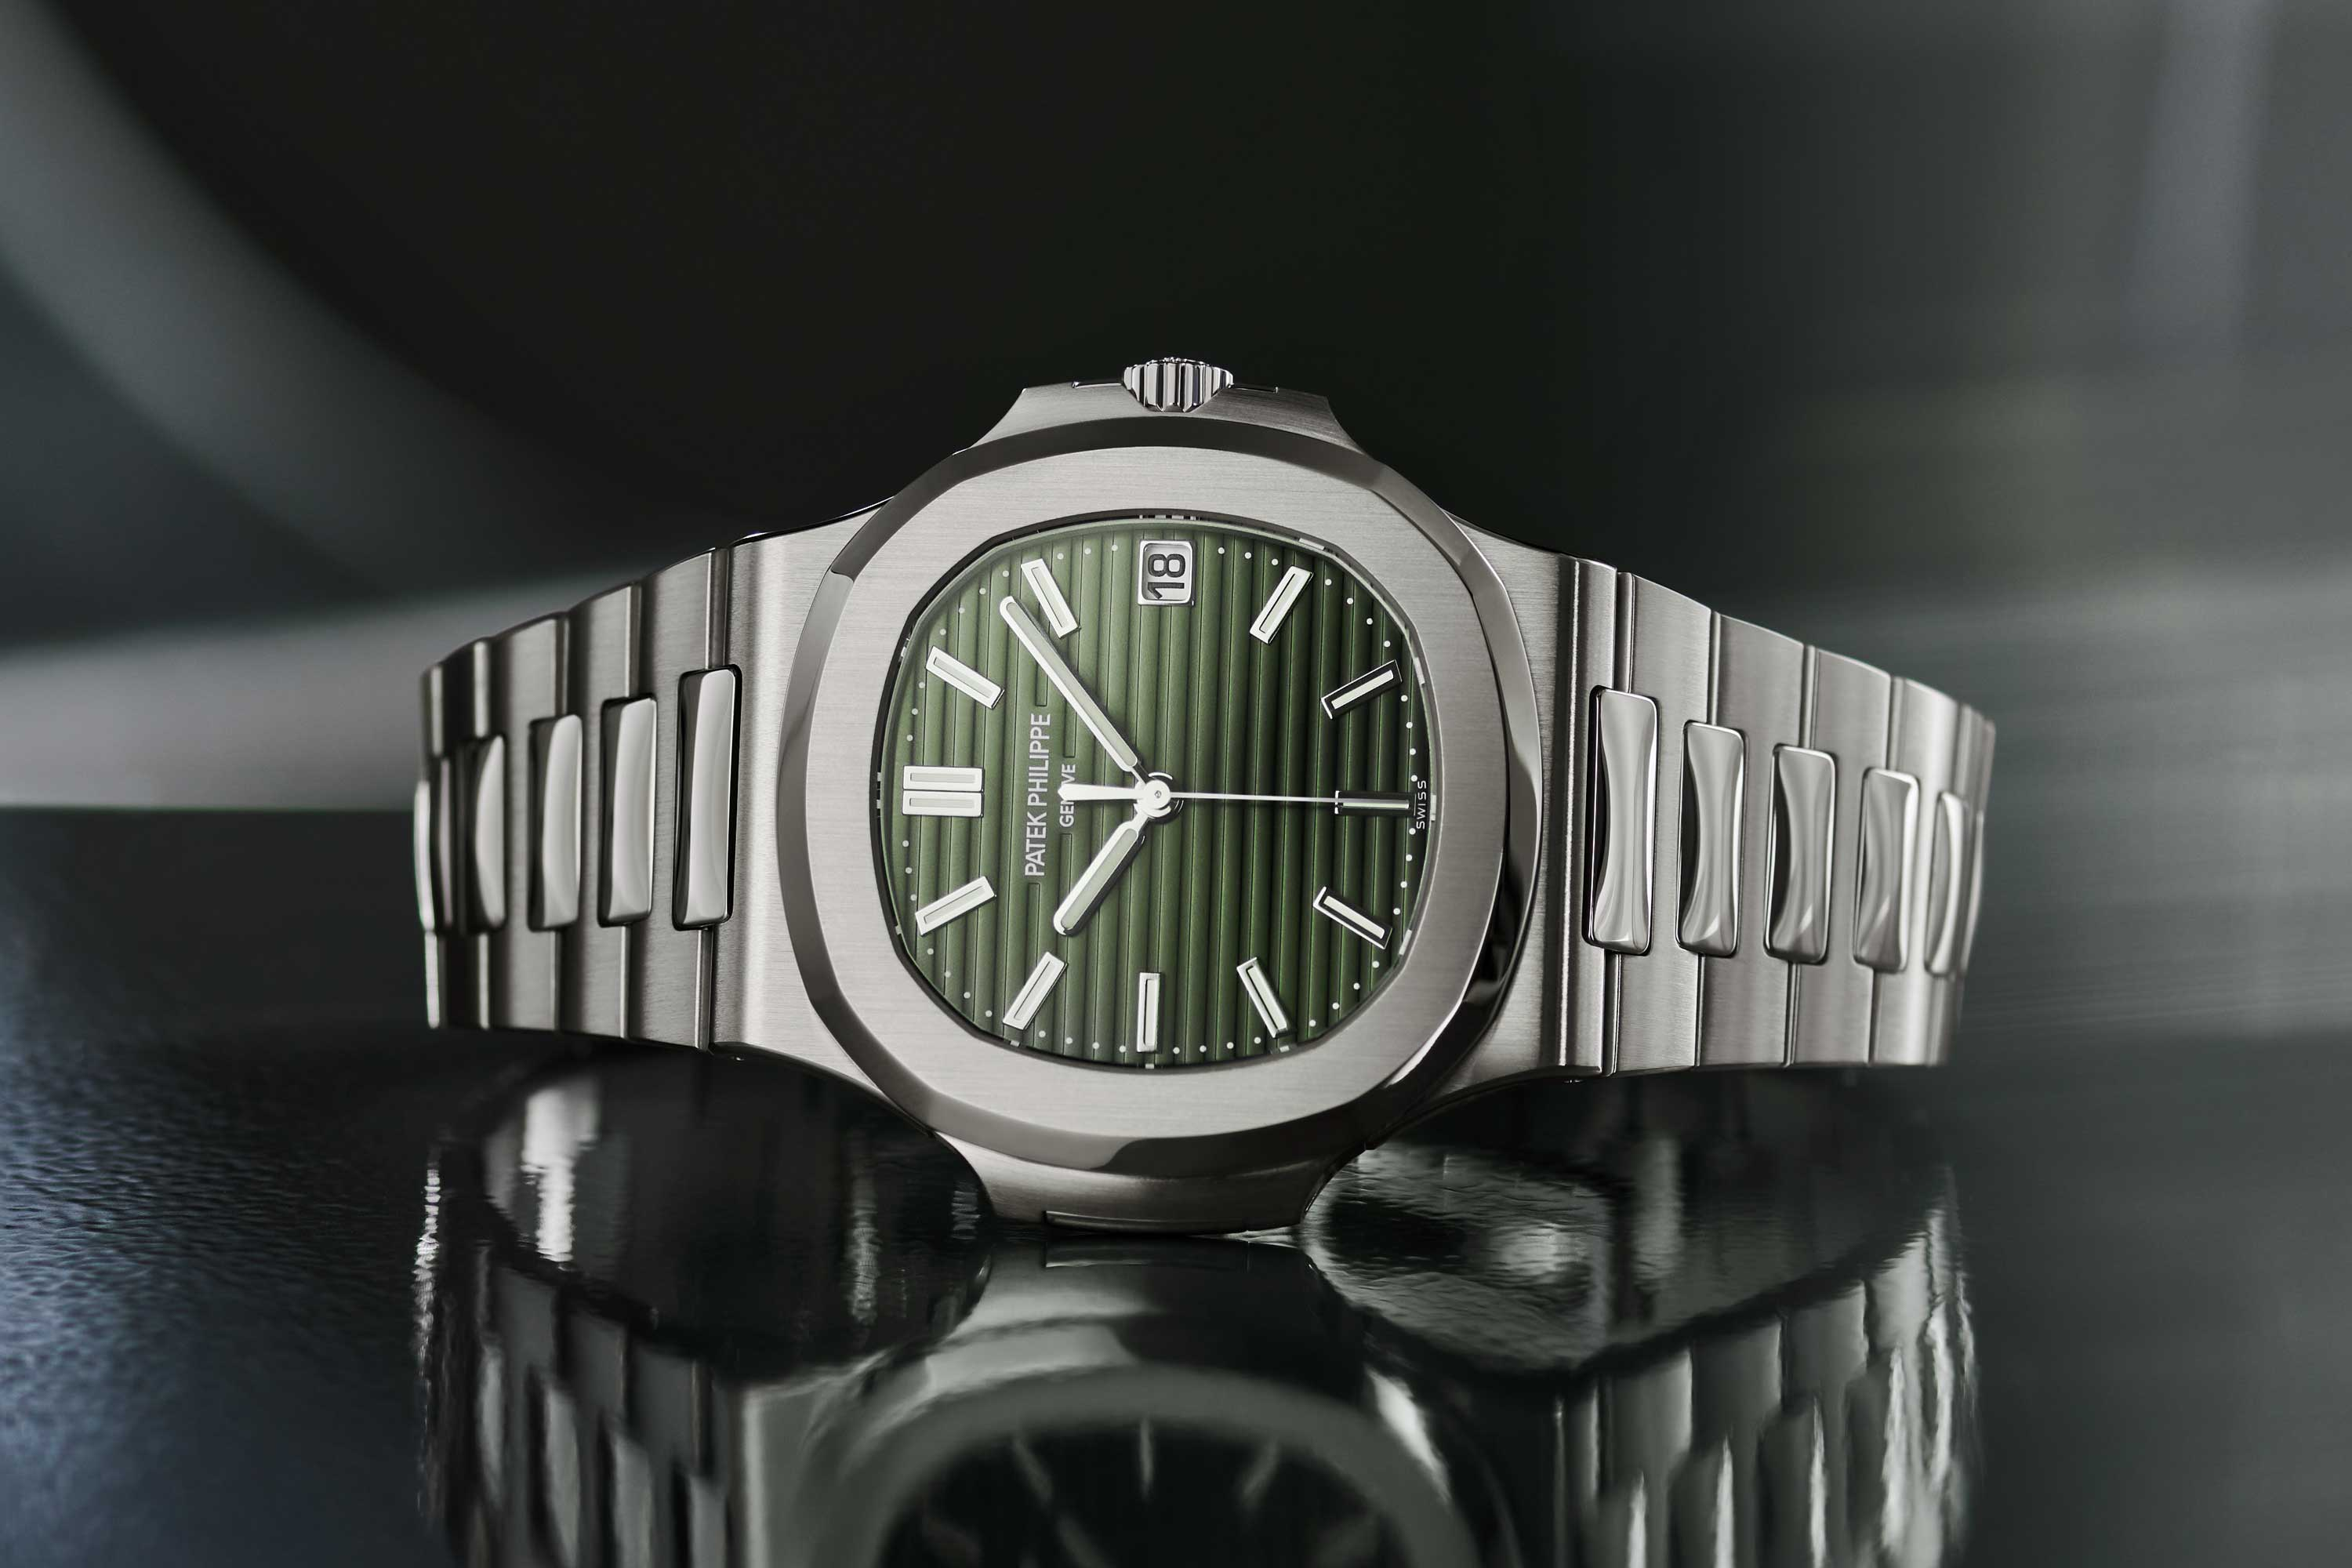 The green-dialled stainless steel Nautilus ref. 5711/1A-014